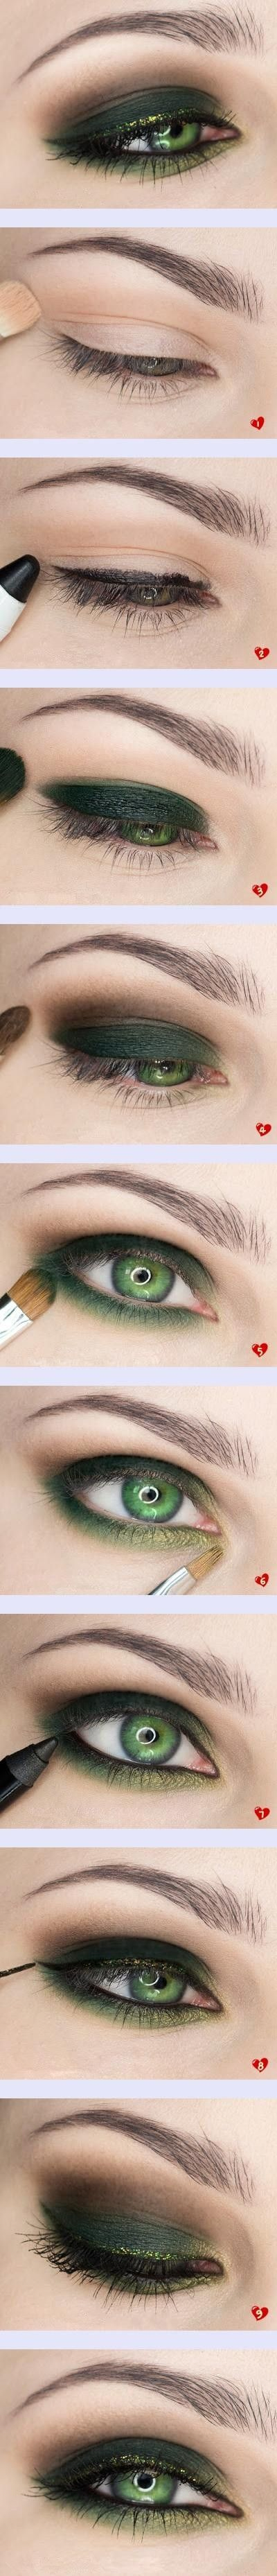 #green #eyes #makeup: